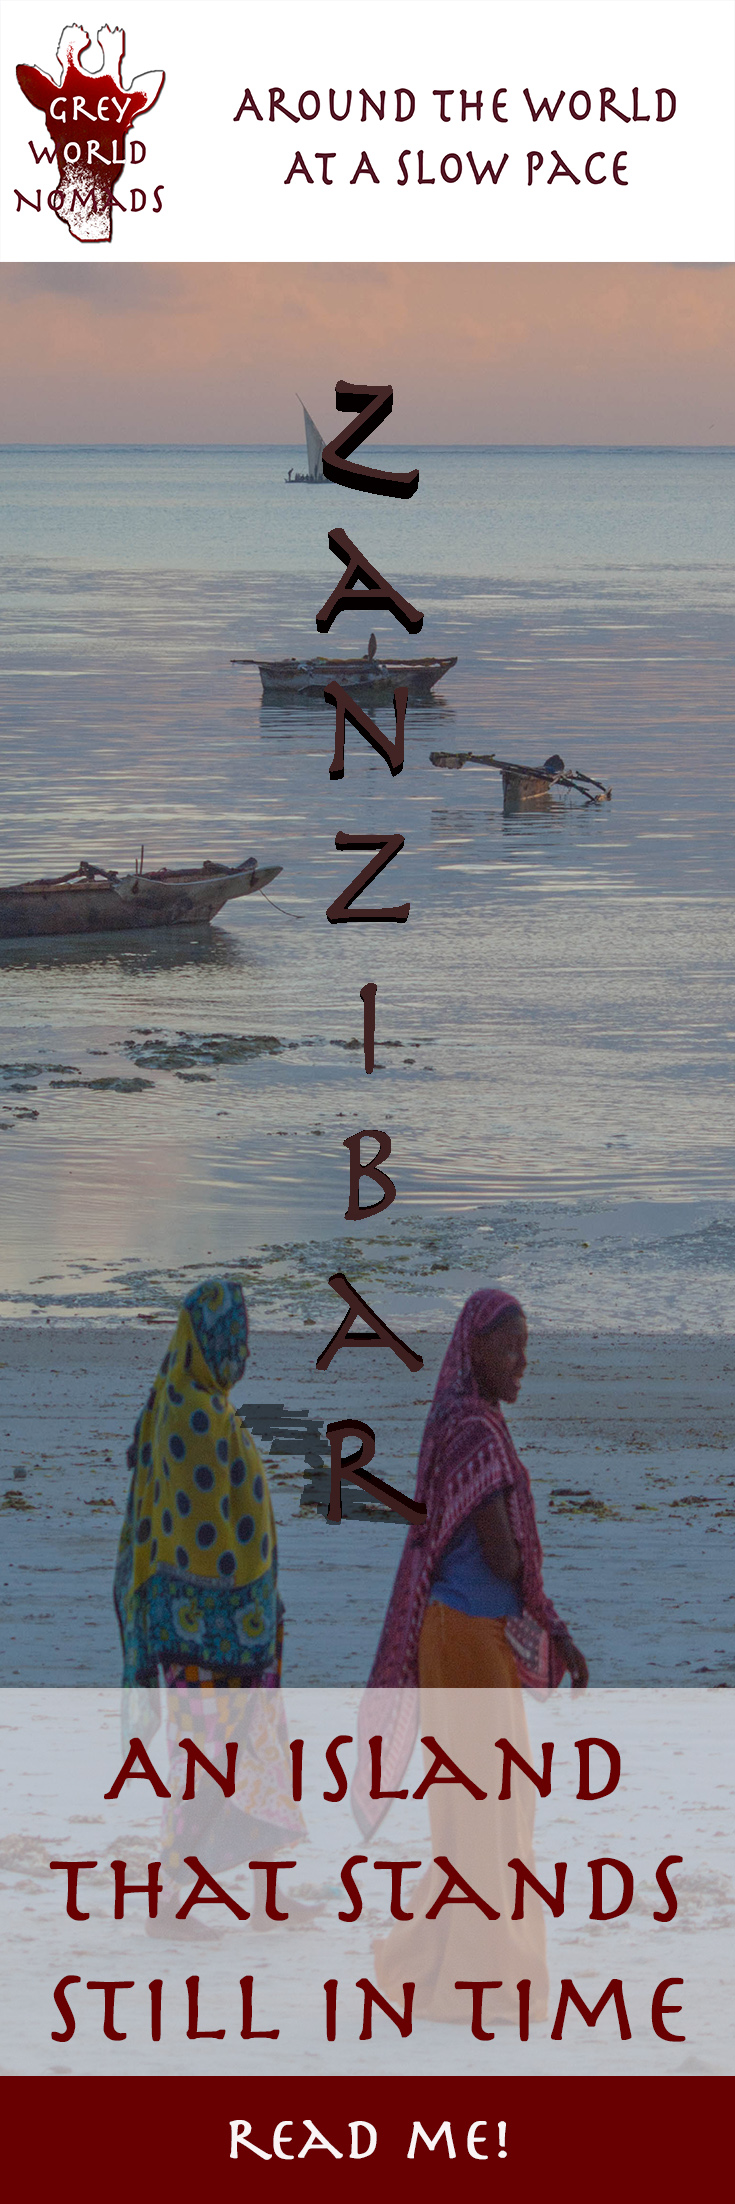 Zanzibar-an-island-stands-still-in-time